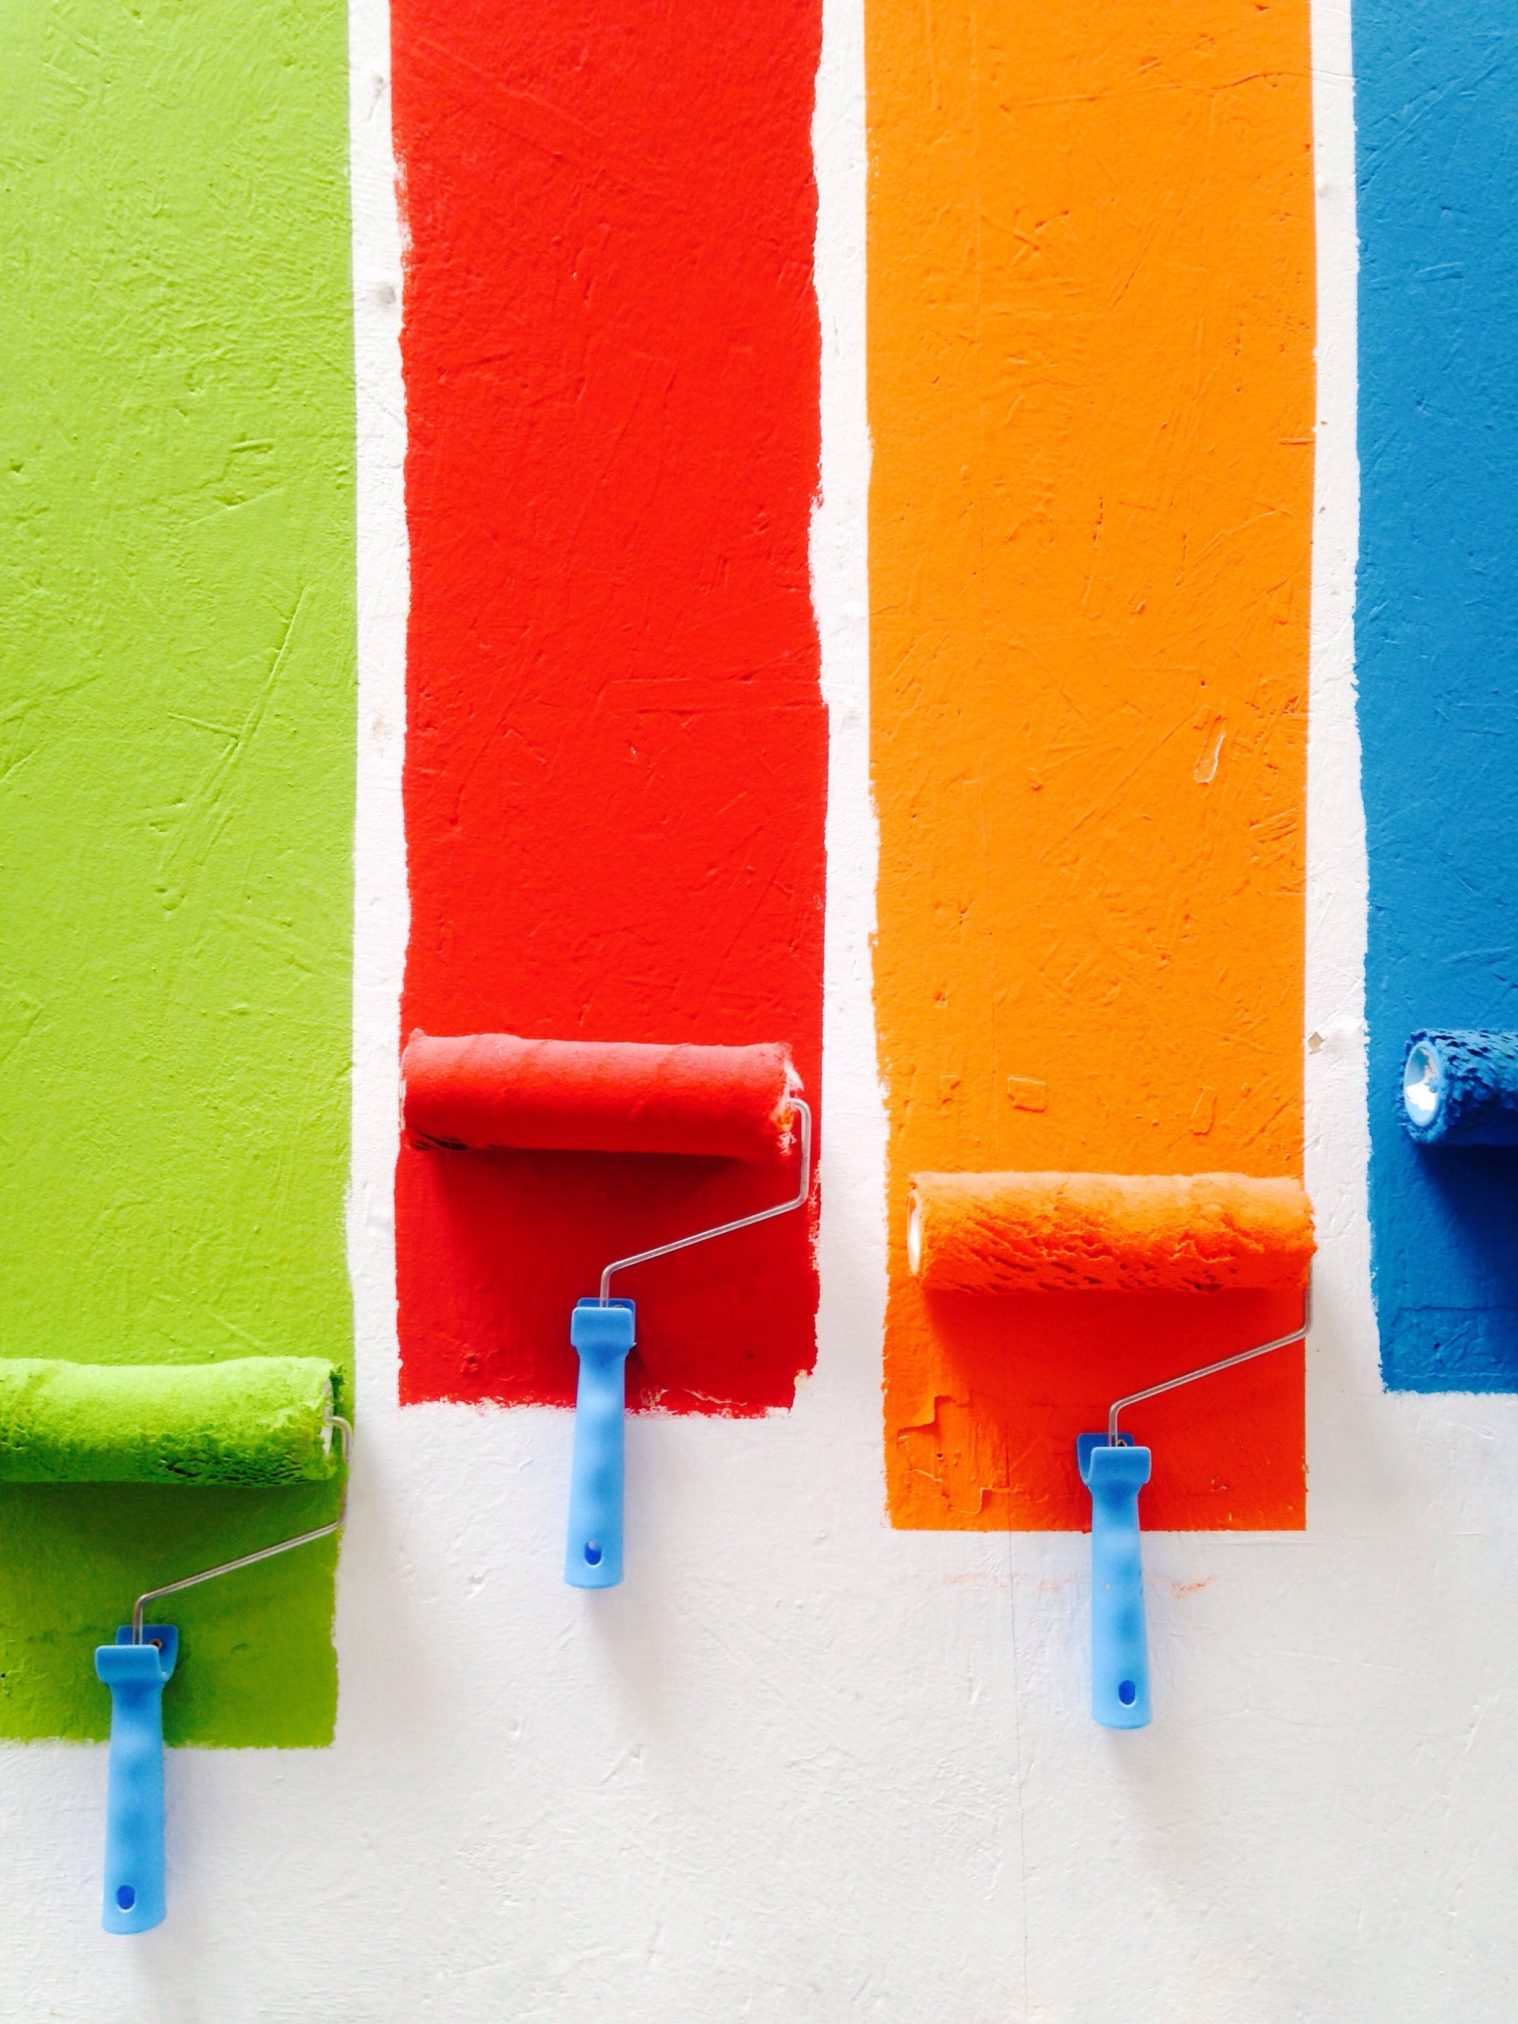 5 Essential Things to Consider When Hiring an Interior Home Painter